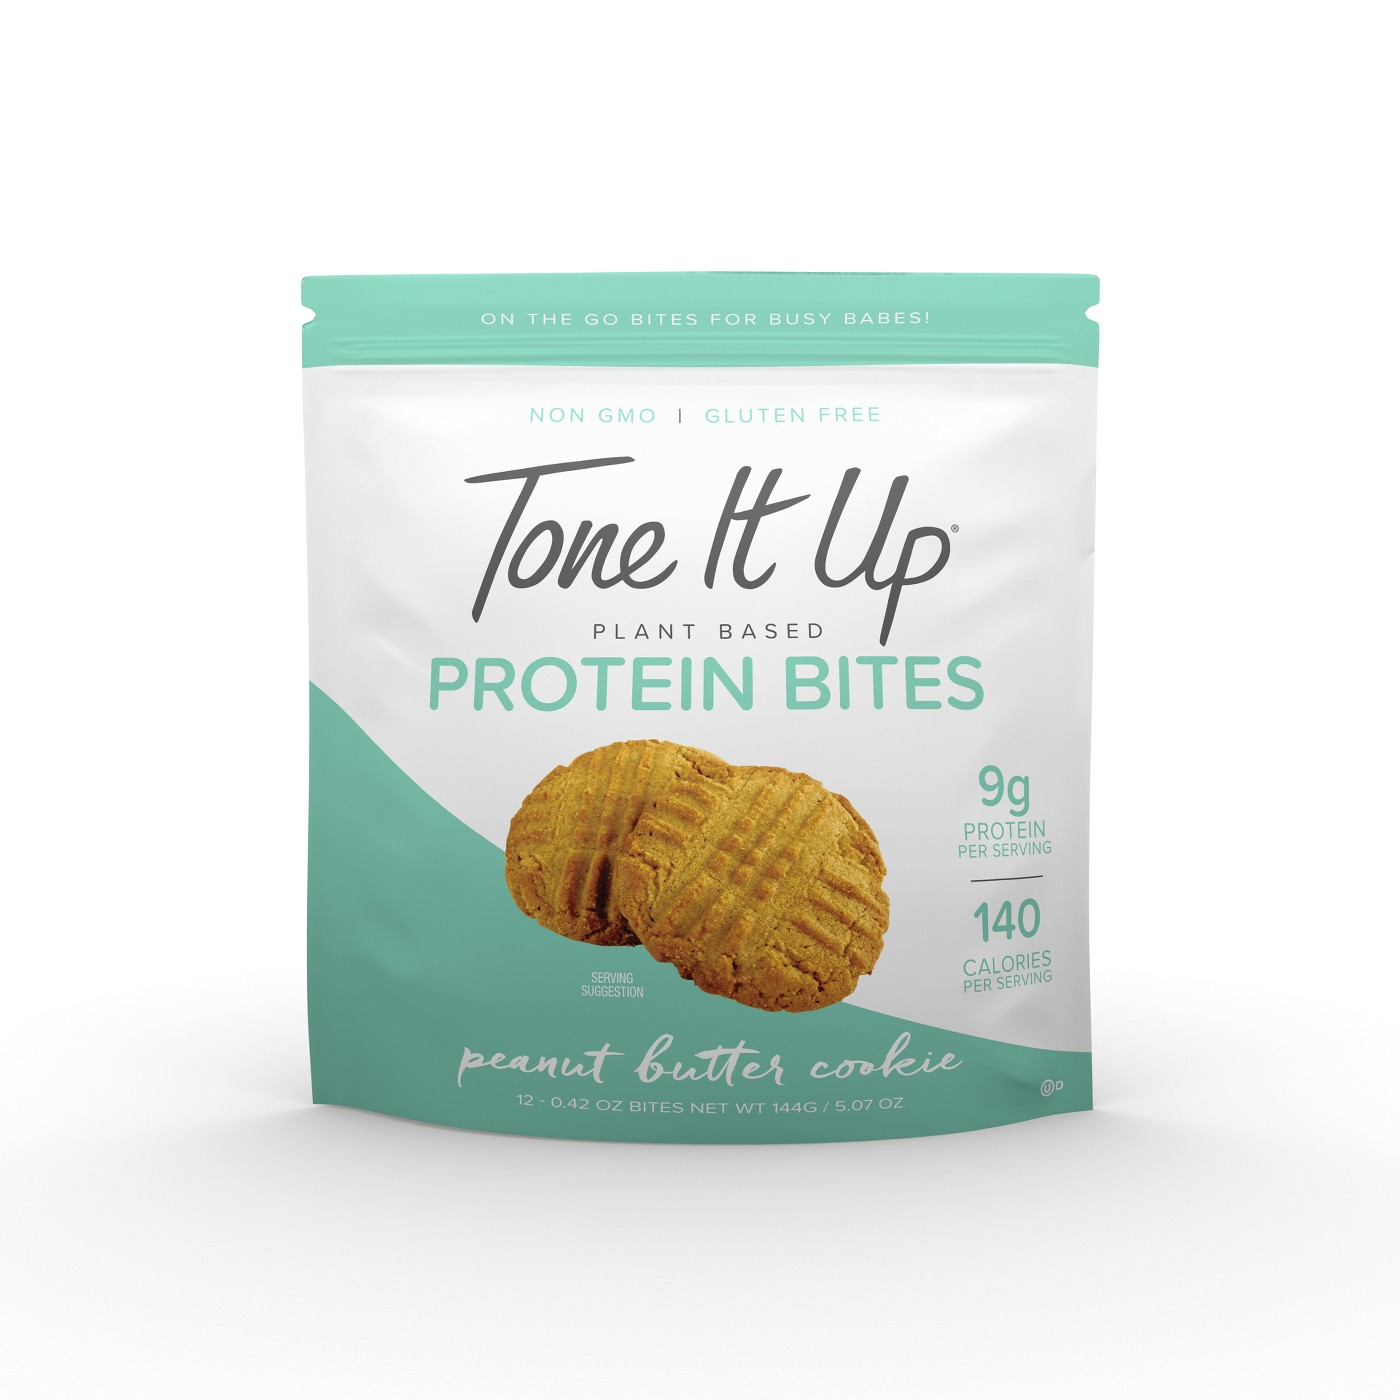 Tone It Up Plant Based Protein Bites - Peanut Butter Cookie - 12ct